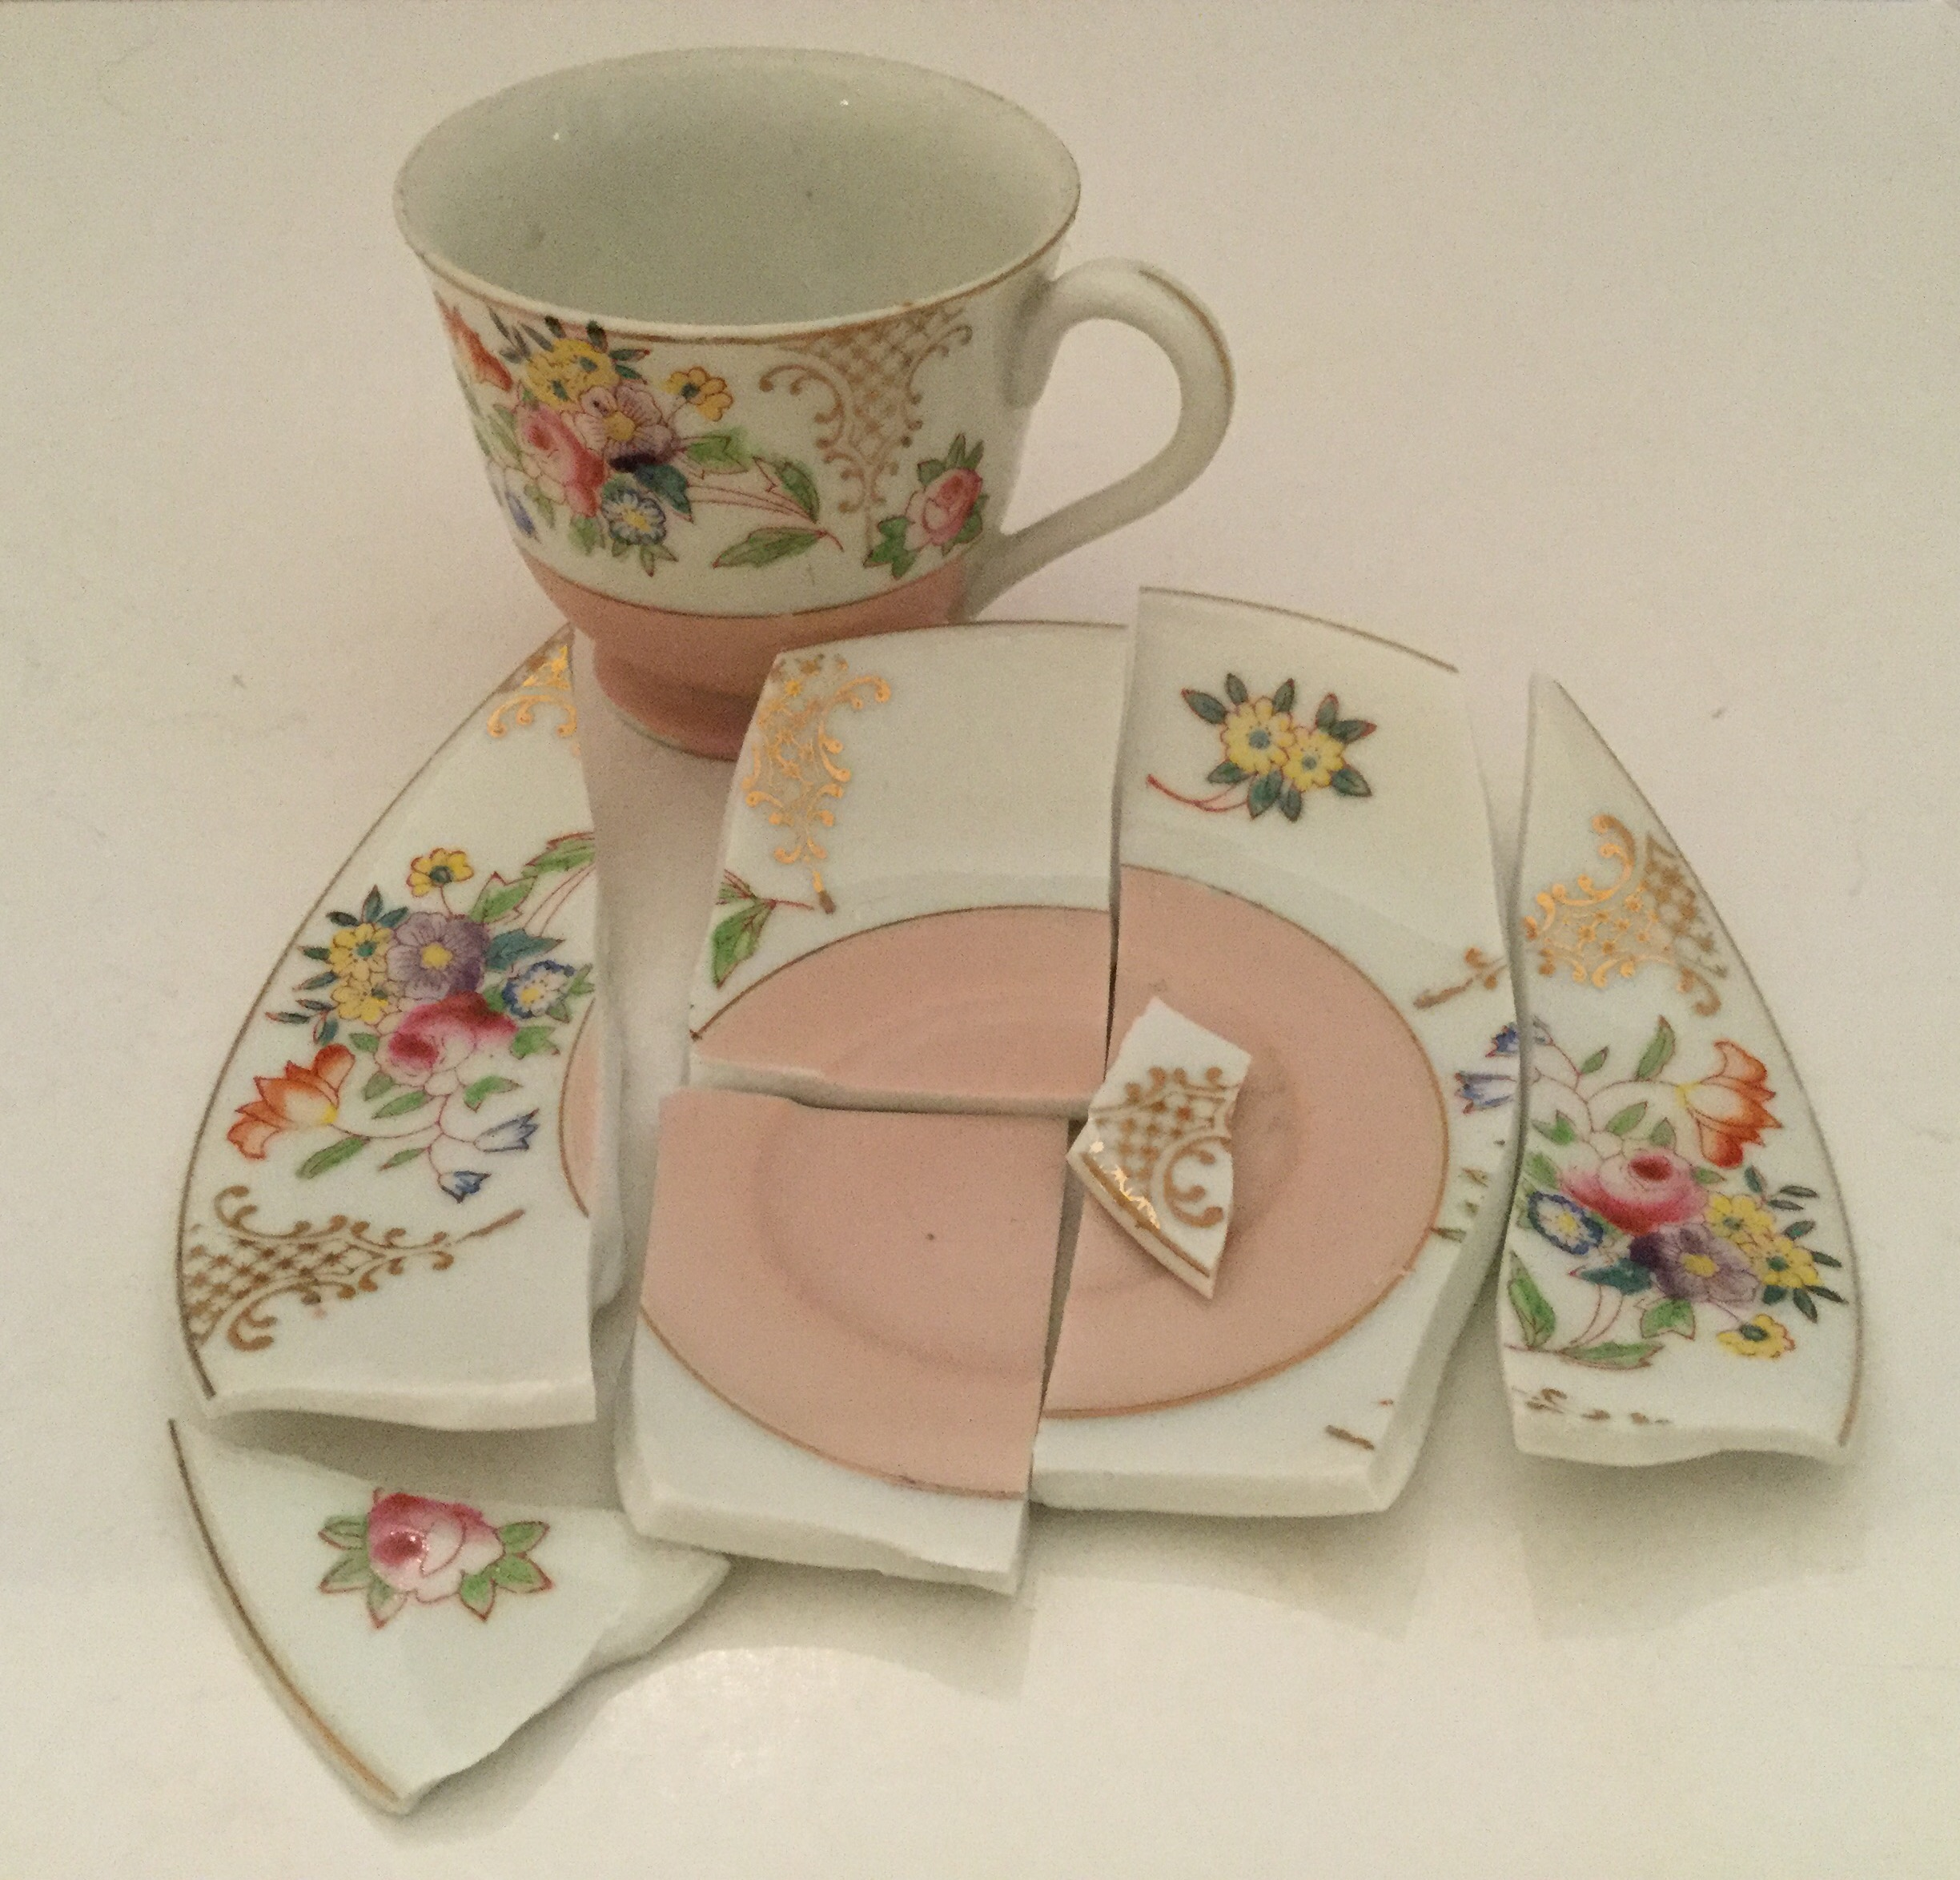 So sad ... broke the saucer to one of my favorites, a Merit China occupied Japan demitasse cups and saucer!